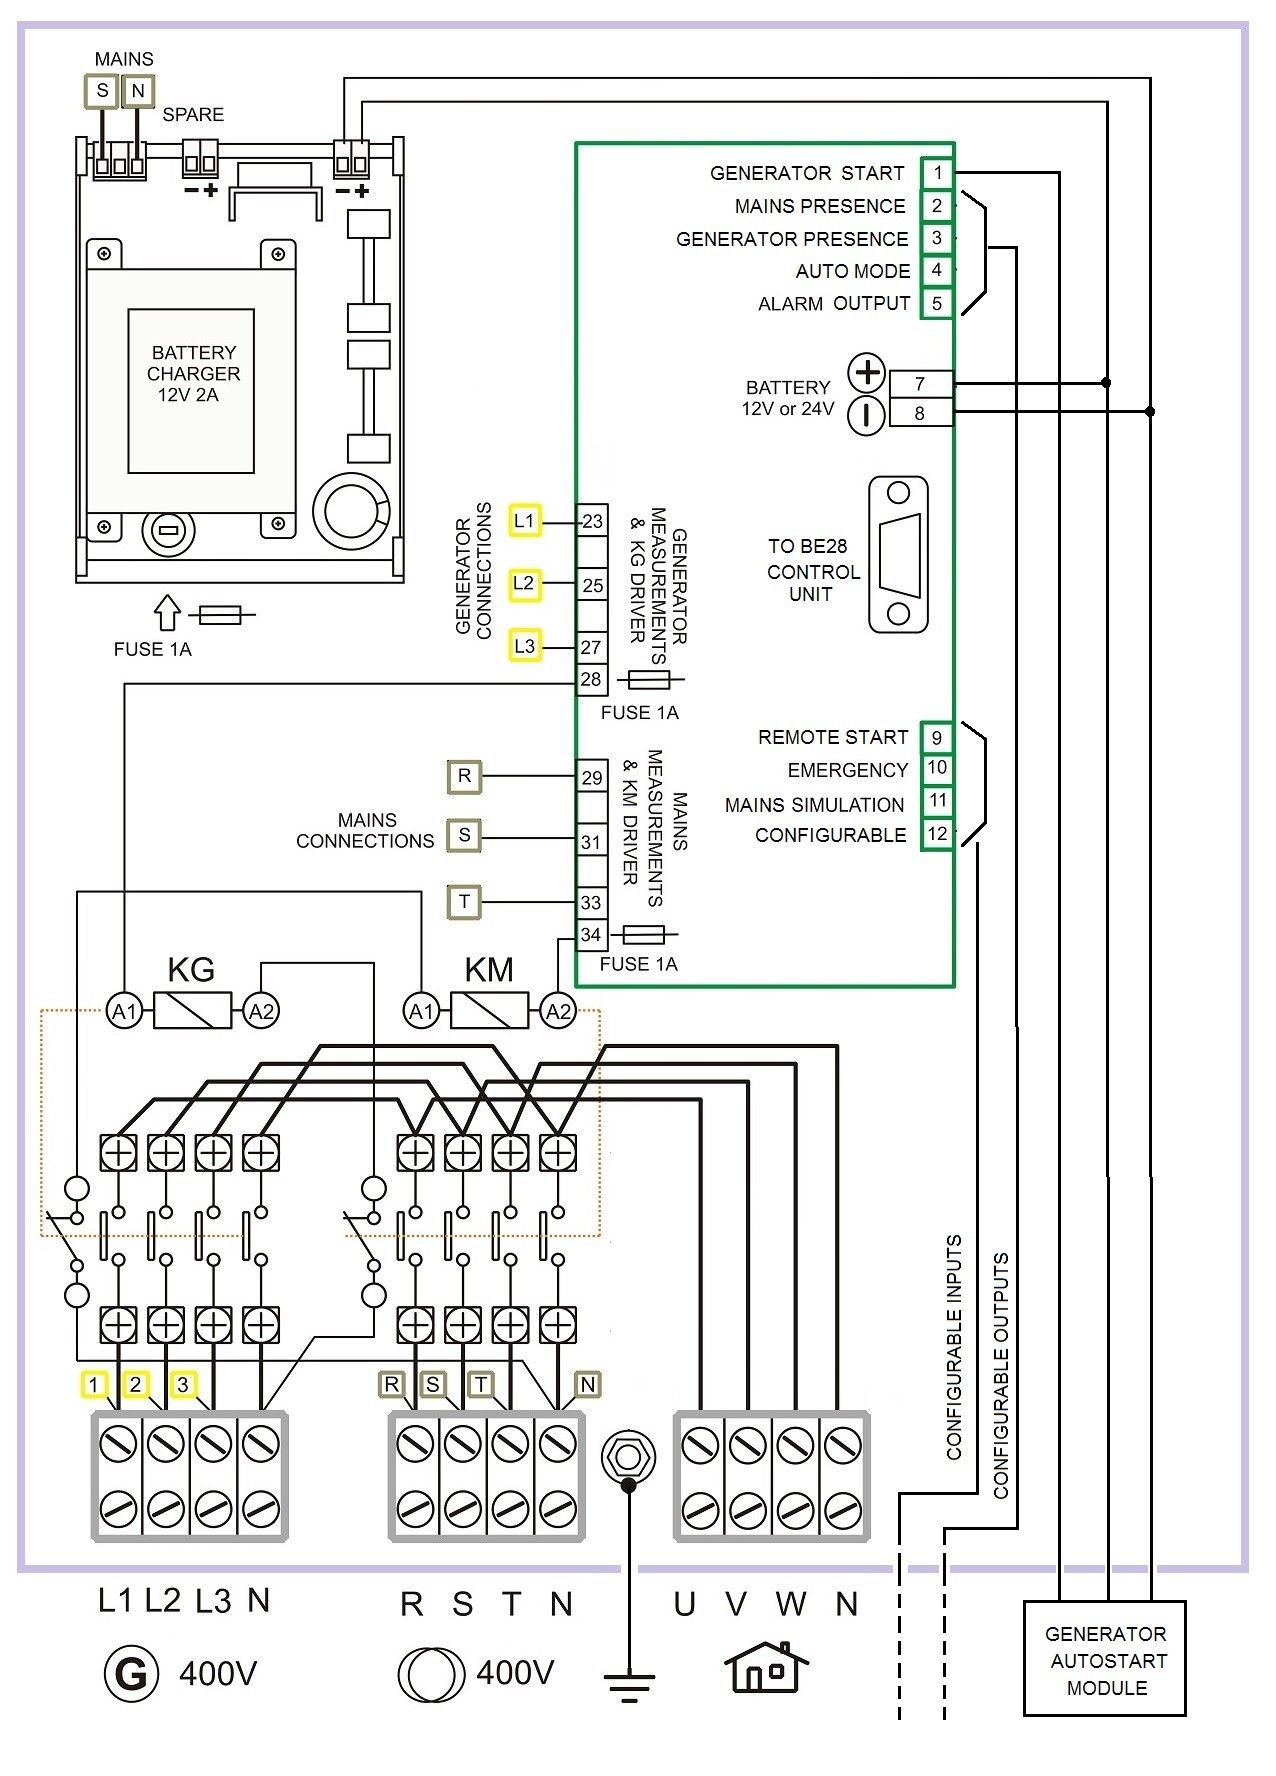 Transfer Switch Wiring Diagrams : transfer, switch, wiring, diagrams, Wiring, Diagram, Generator, Transfer, Switch, #diagram, #diagramtemplate, #diagramsample, Switch,, Electrical, Circuit